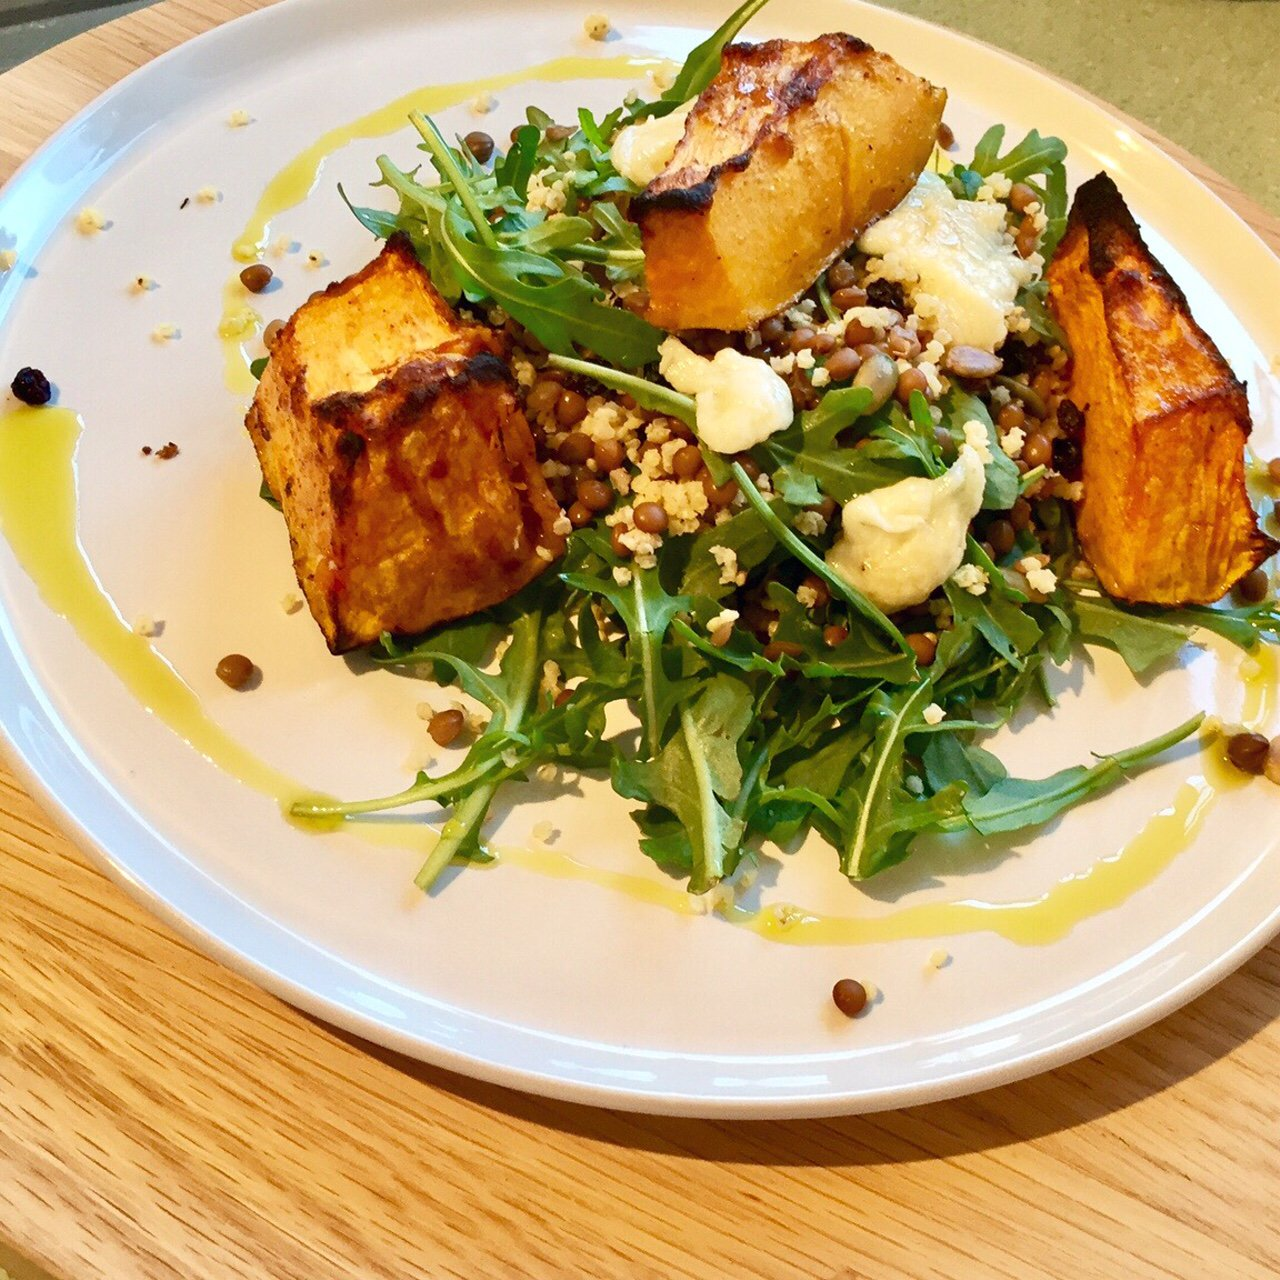 Roast Pumpkin, Halloumi & Millet Salad with Lemon-Herb Dressing